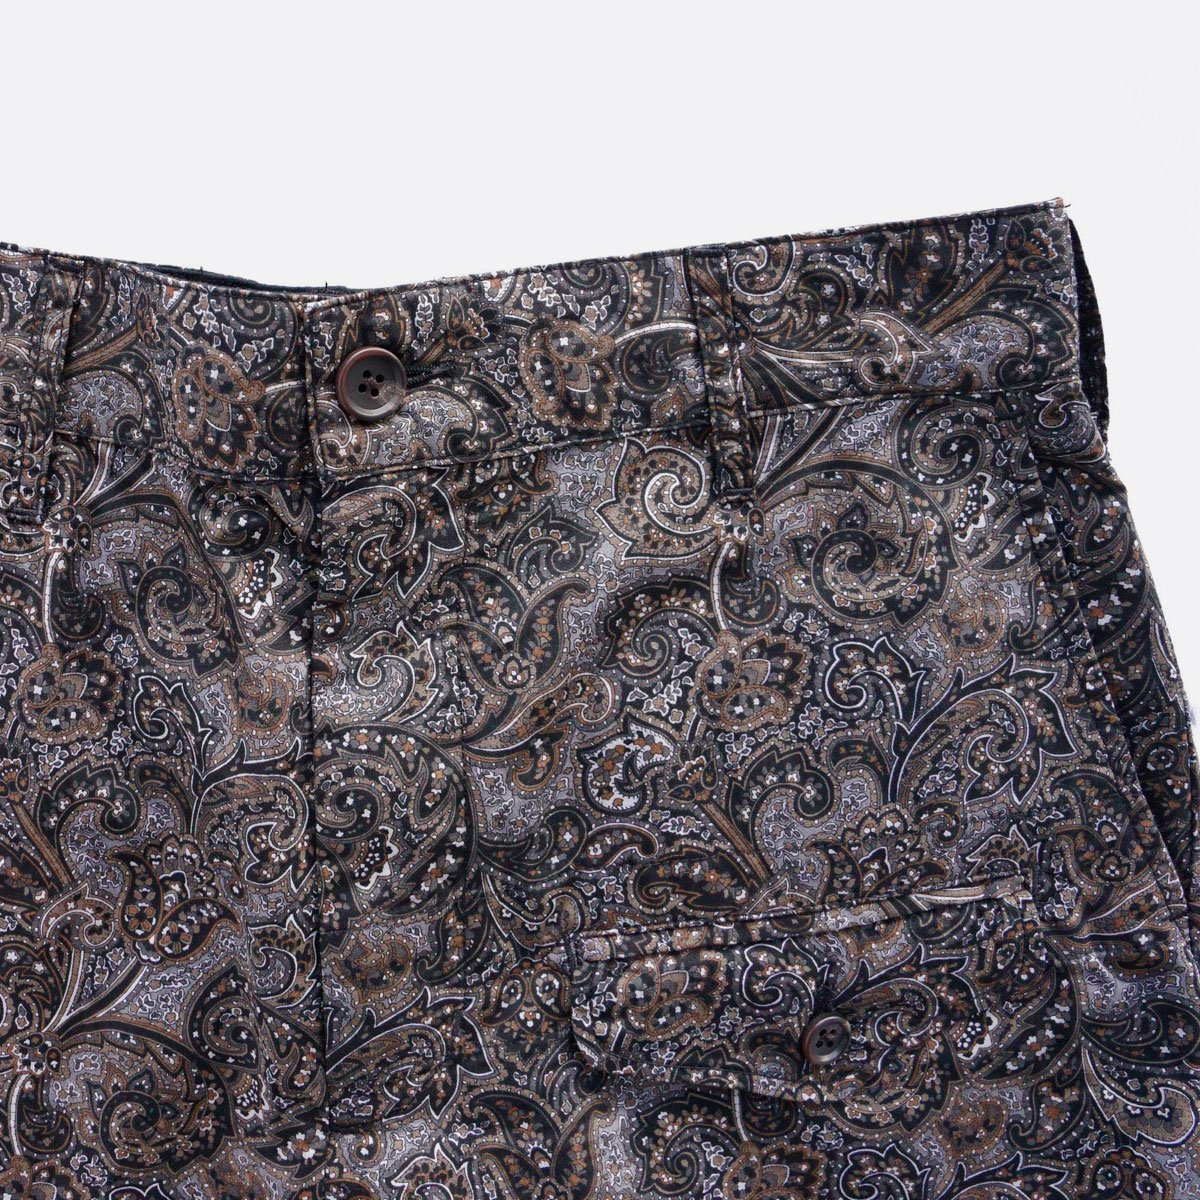 Engineered Garments  Ghurka Short - Paisley Print  (Black/Brown)4